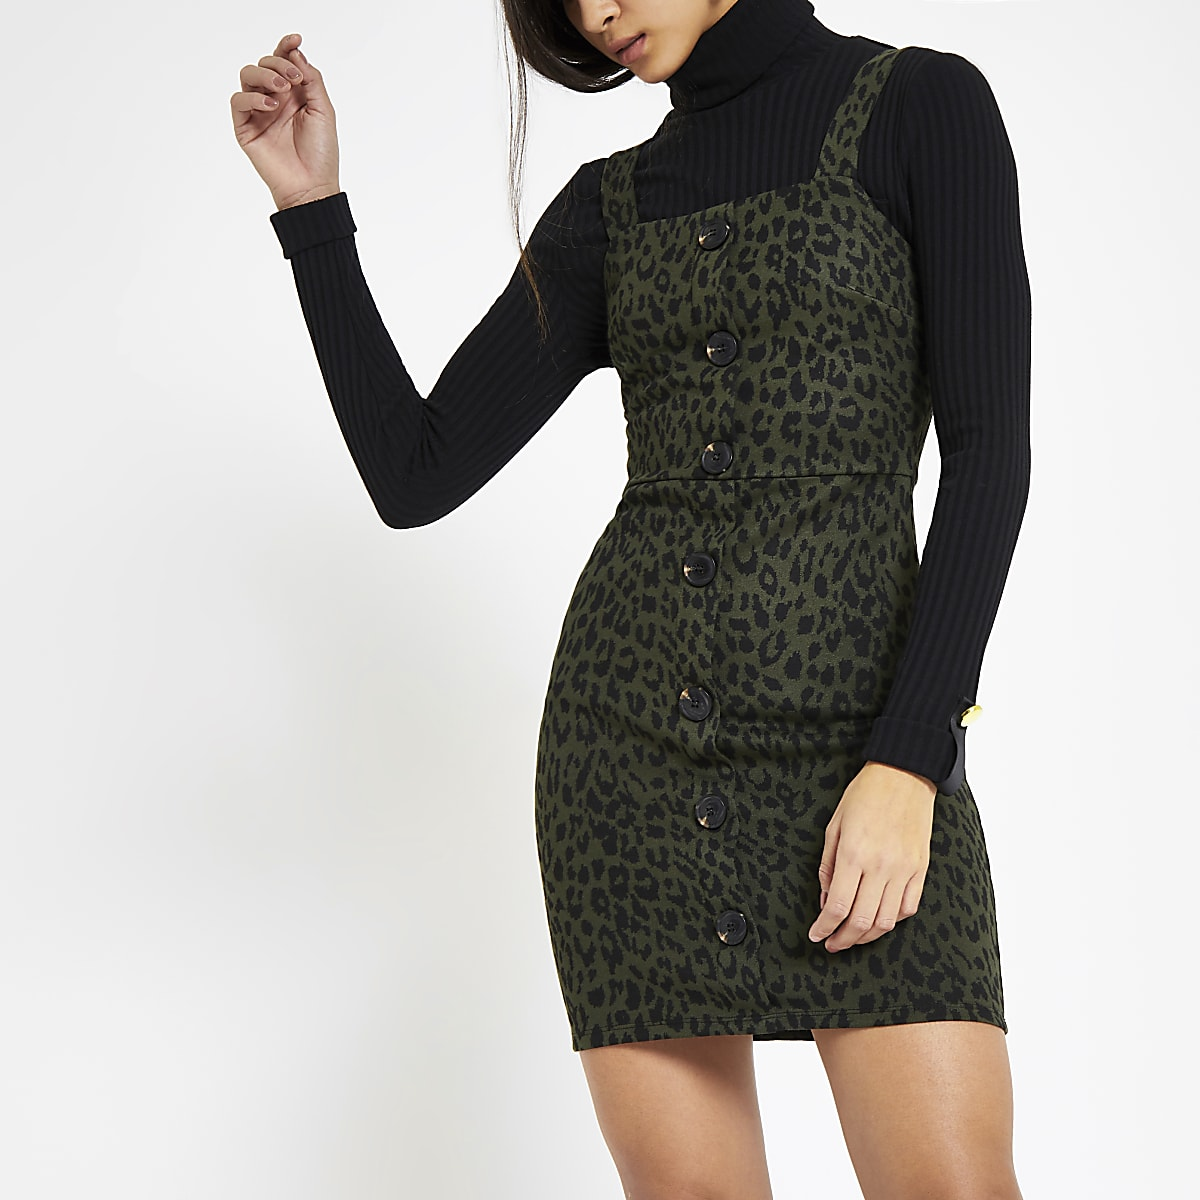 Khaki leopard print pinafore dress